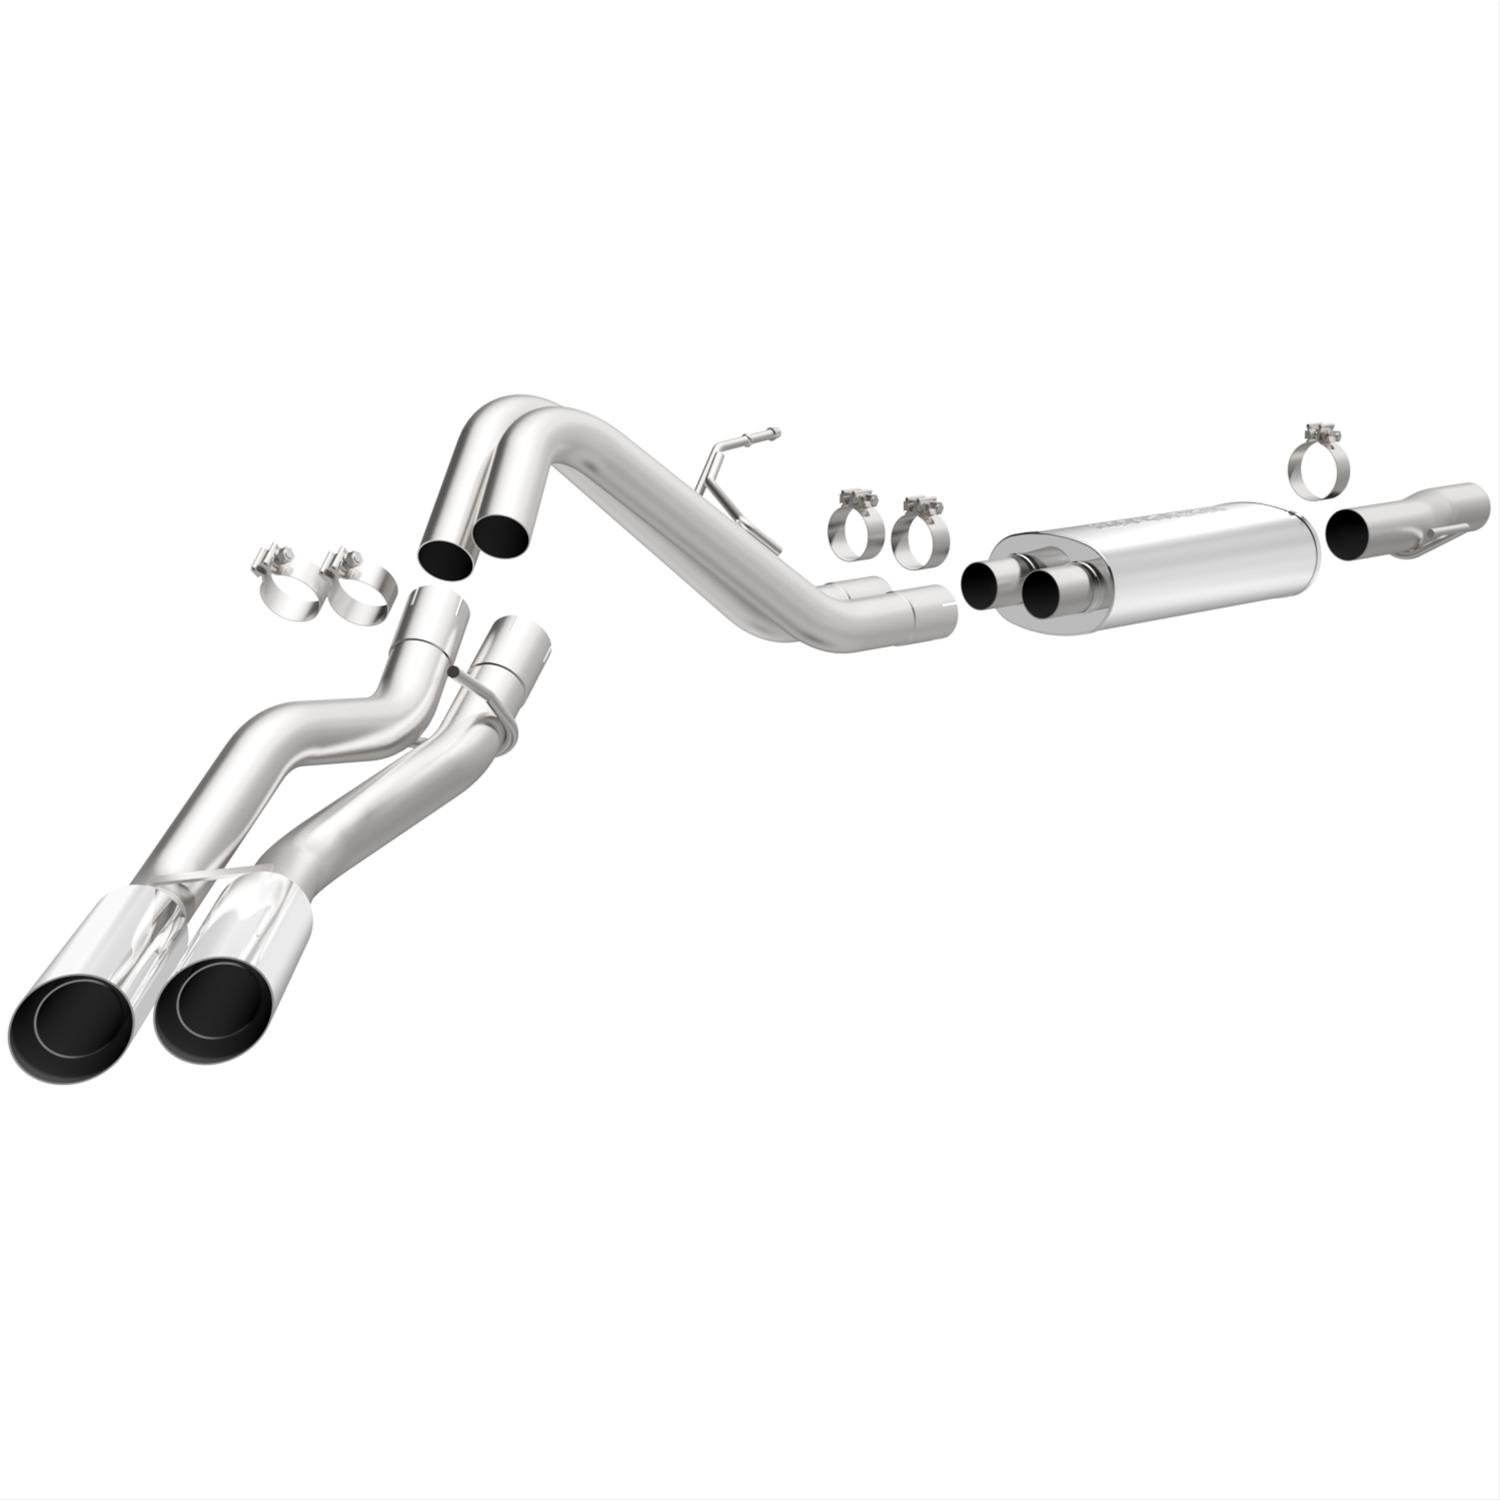 1998-2011 Ford Crown Victoria SG404024 Beneges 2PCs Front Hood Supports Compatible with 2003-2004 Mercury Marauder 2006-2011 Mercury Grand Marquis Gas Spring Charged Lift Struts Shocks Dampers 4550